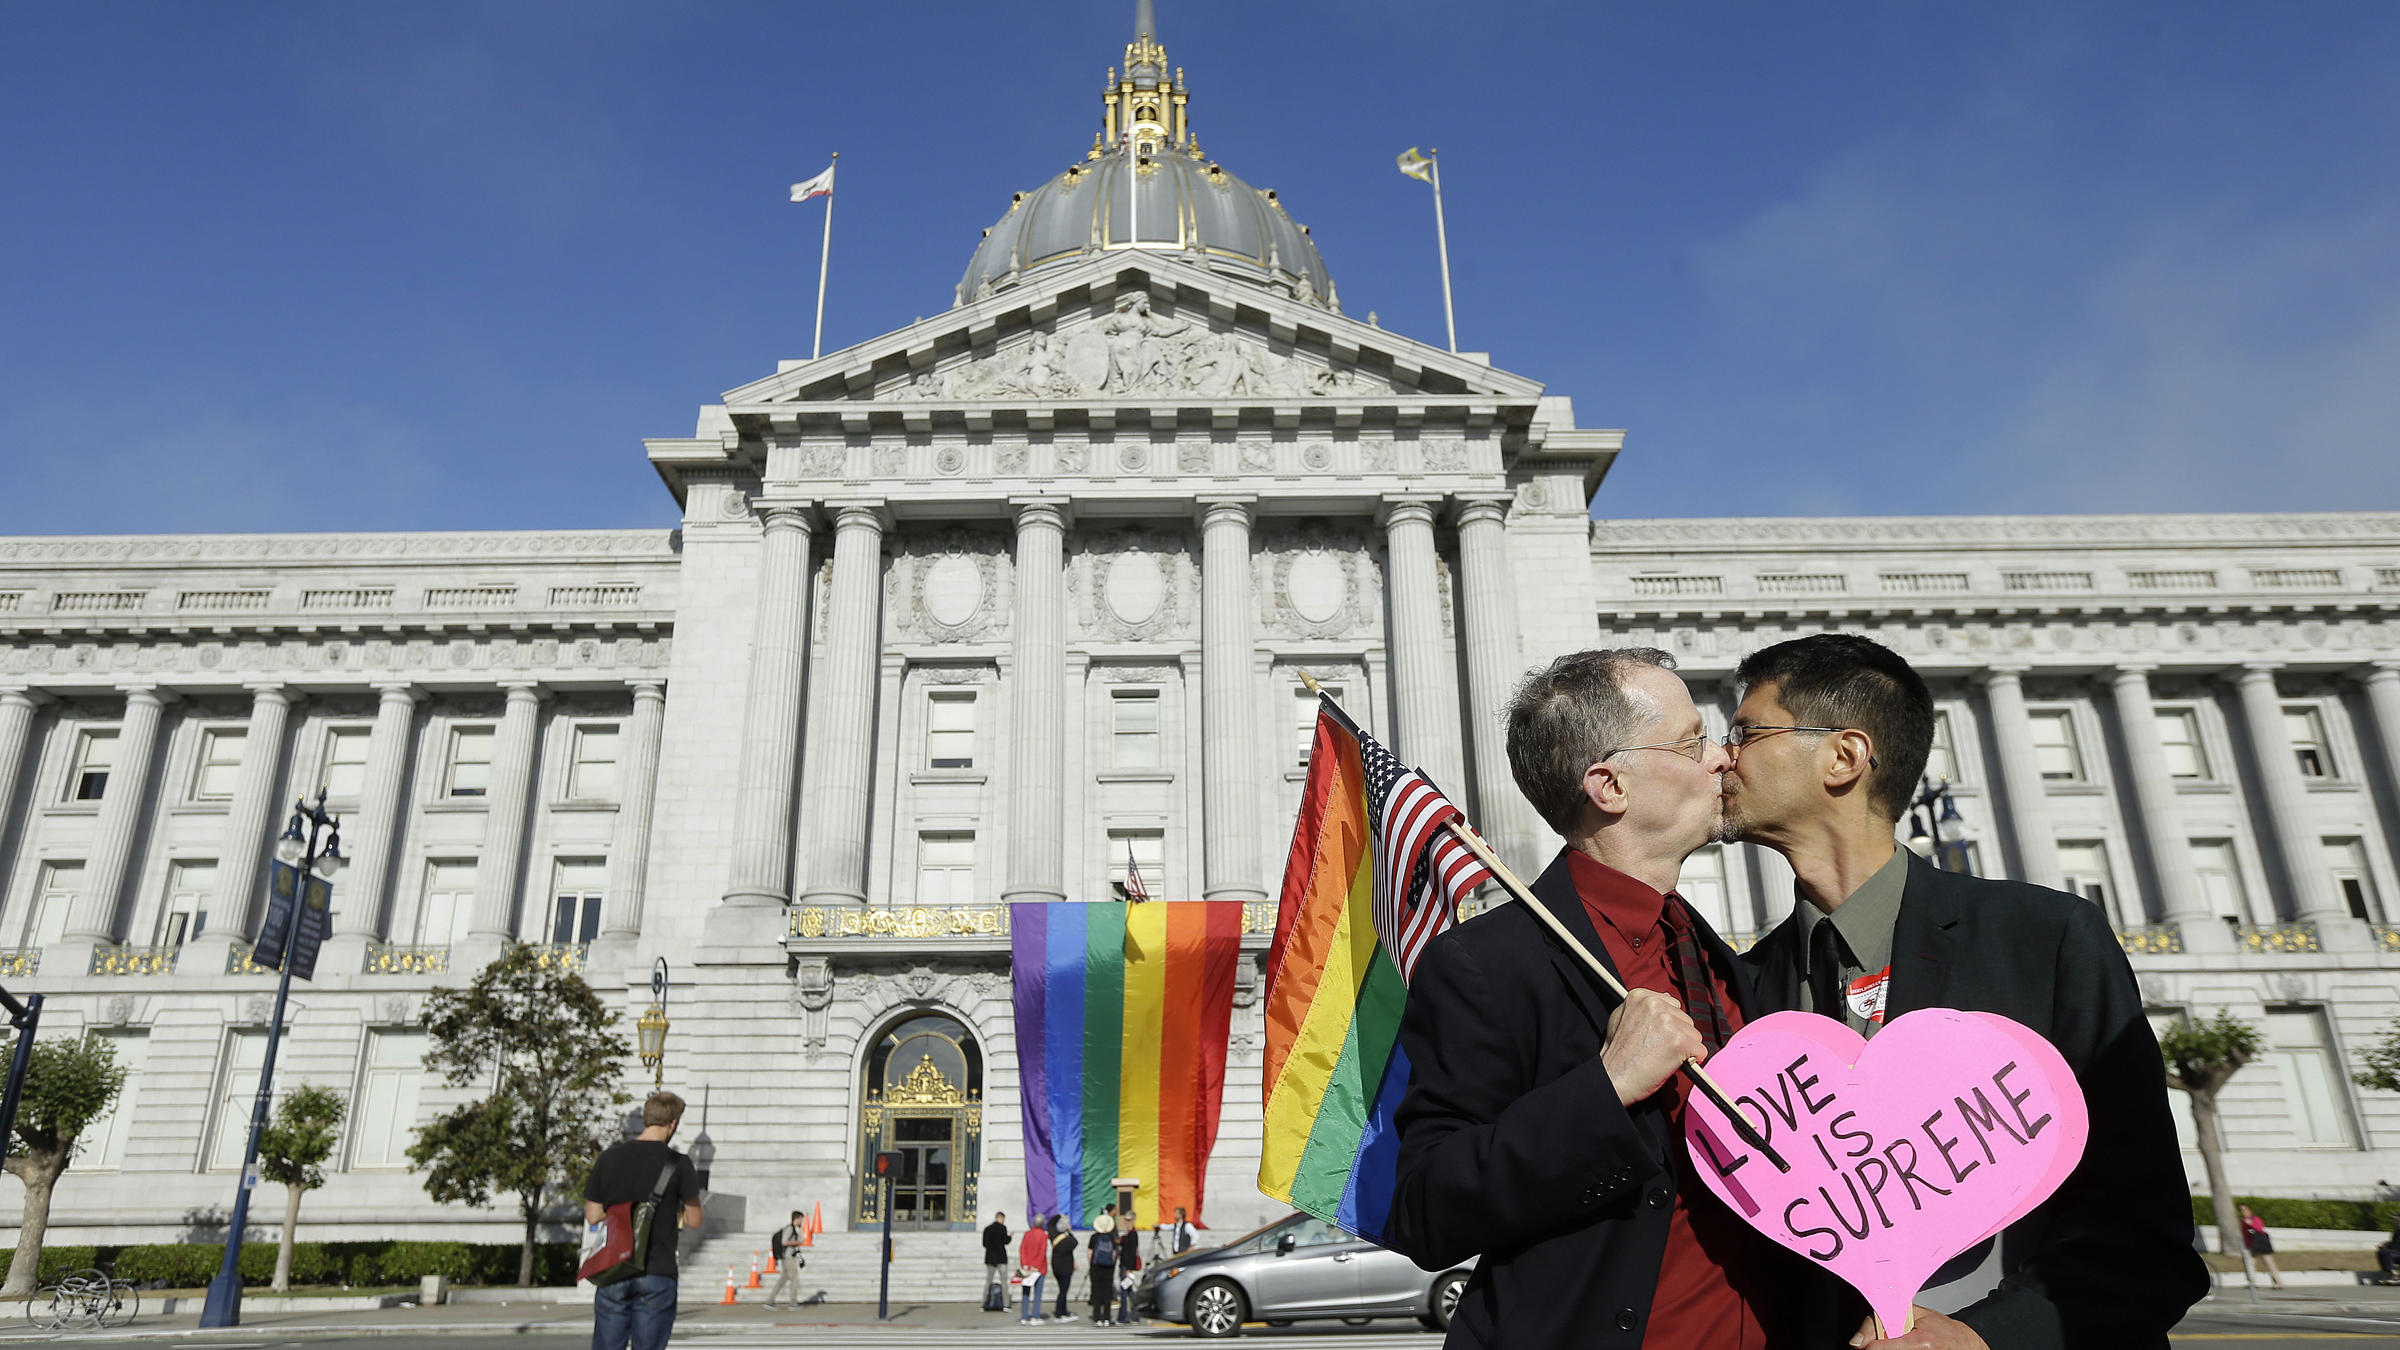 Supreme Court Changes Face Of Marriage In Historic Ruling ...